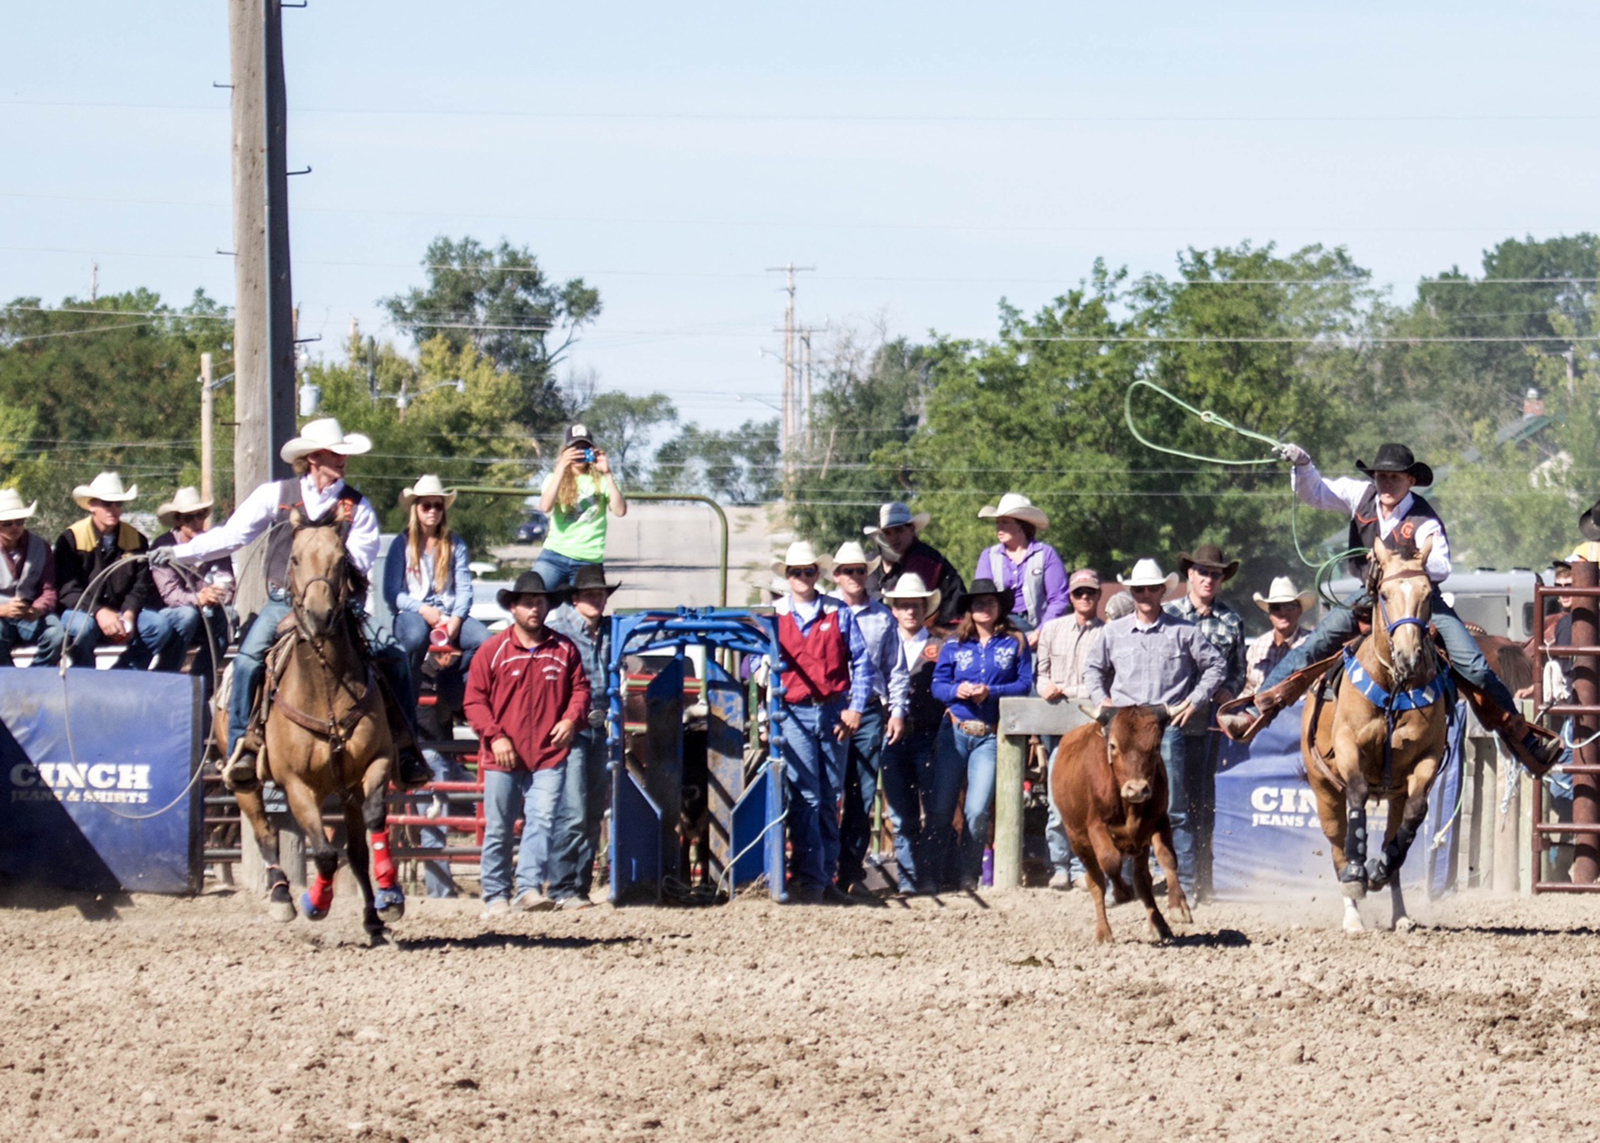 CWC rodeo Team ropers Brady Thurston and Bryce Sturman chase down a steer at the Chadron State College rodeo